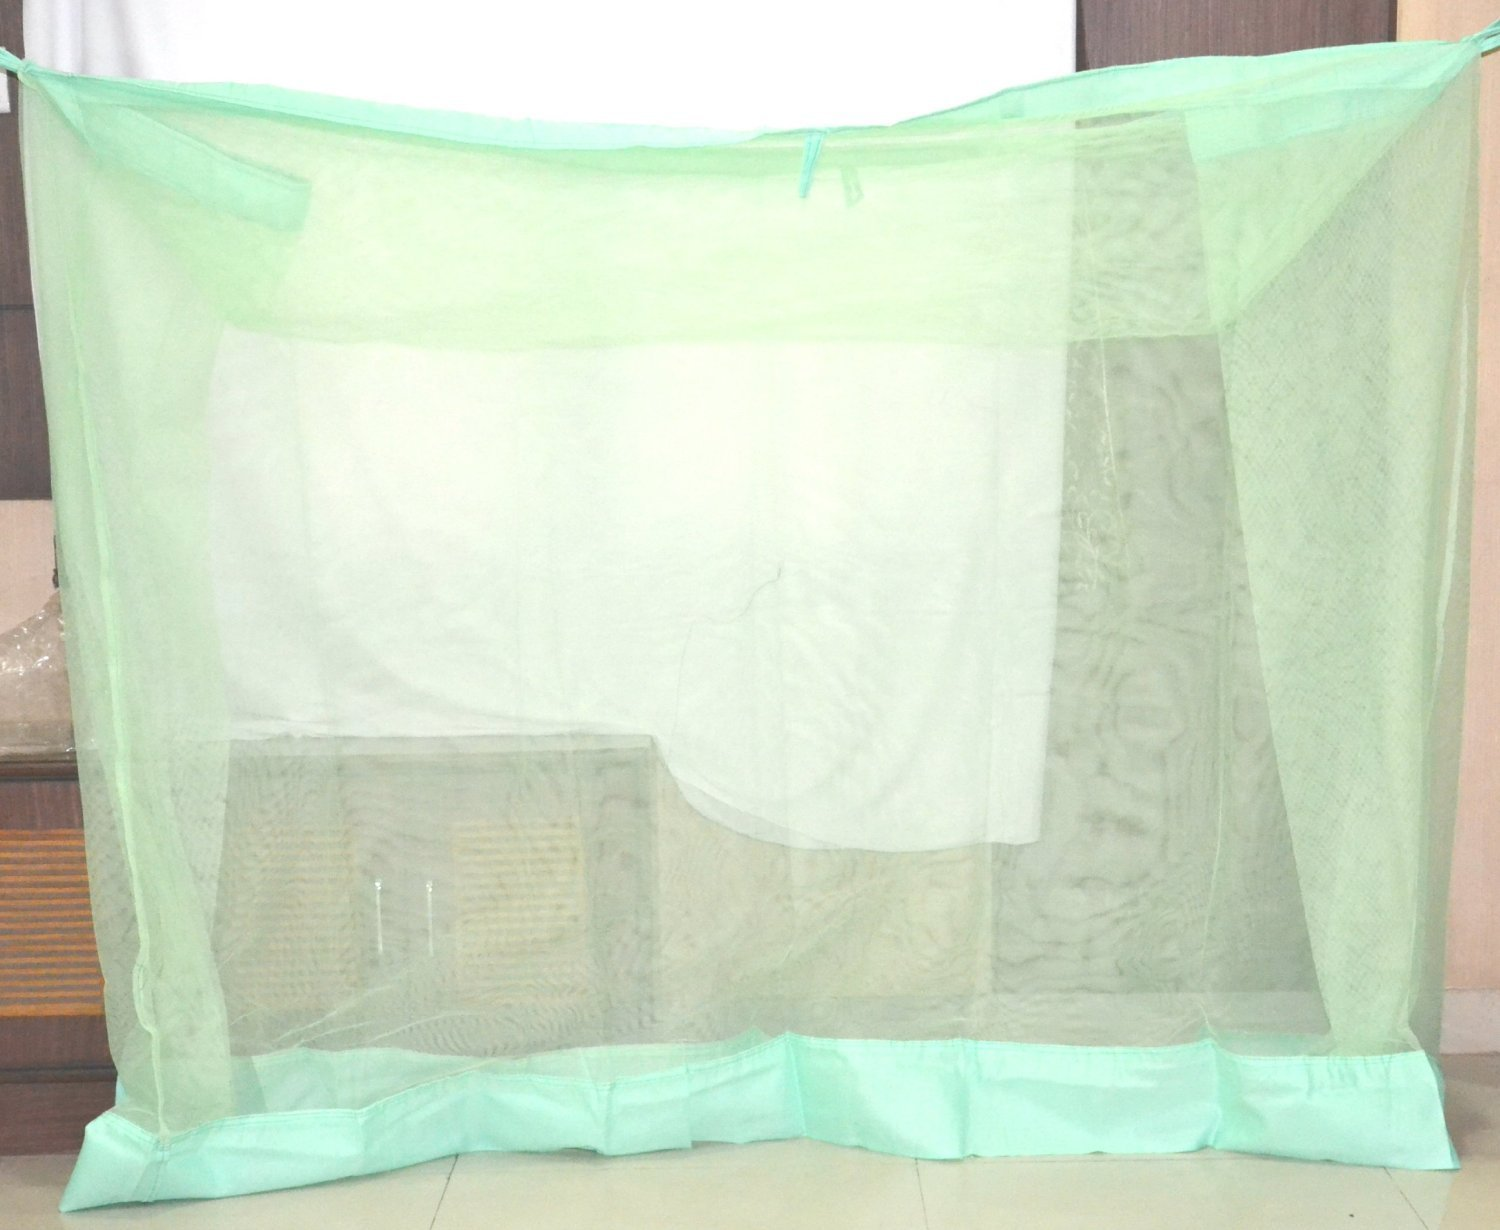 Blue Eye Superior Luxor Qualtiy Mosquito Net For XXL King Size Bed- ( 6.5*8 Ft :: Green) product image